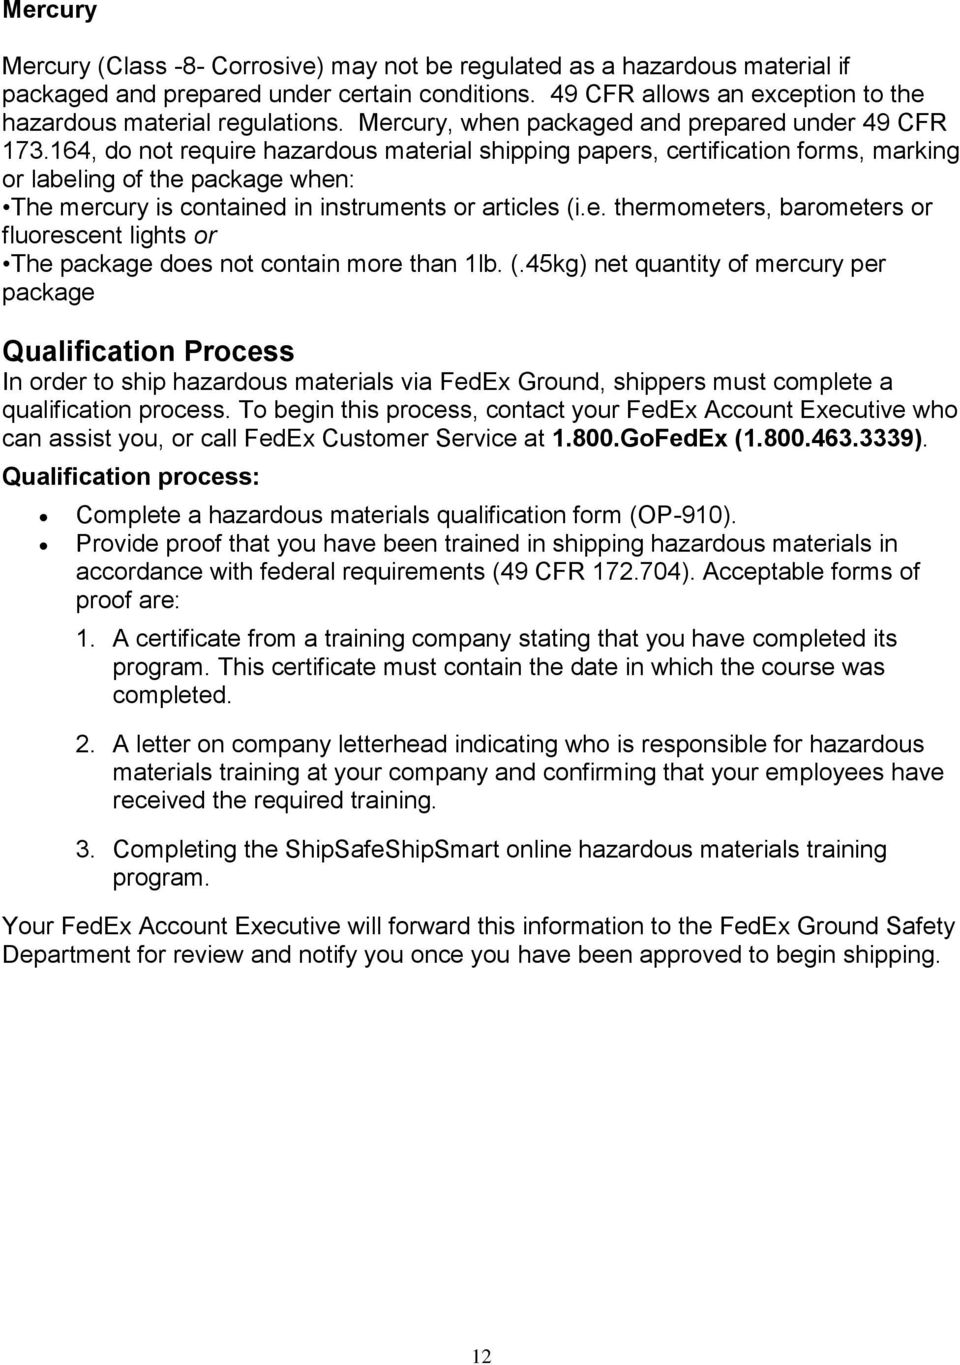 TABLE OF CONTENTS- TOPIC Page # FedEx Ground Prohibited